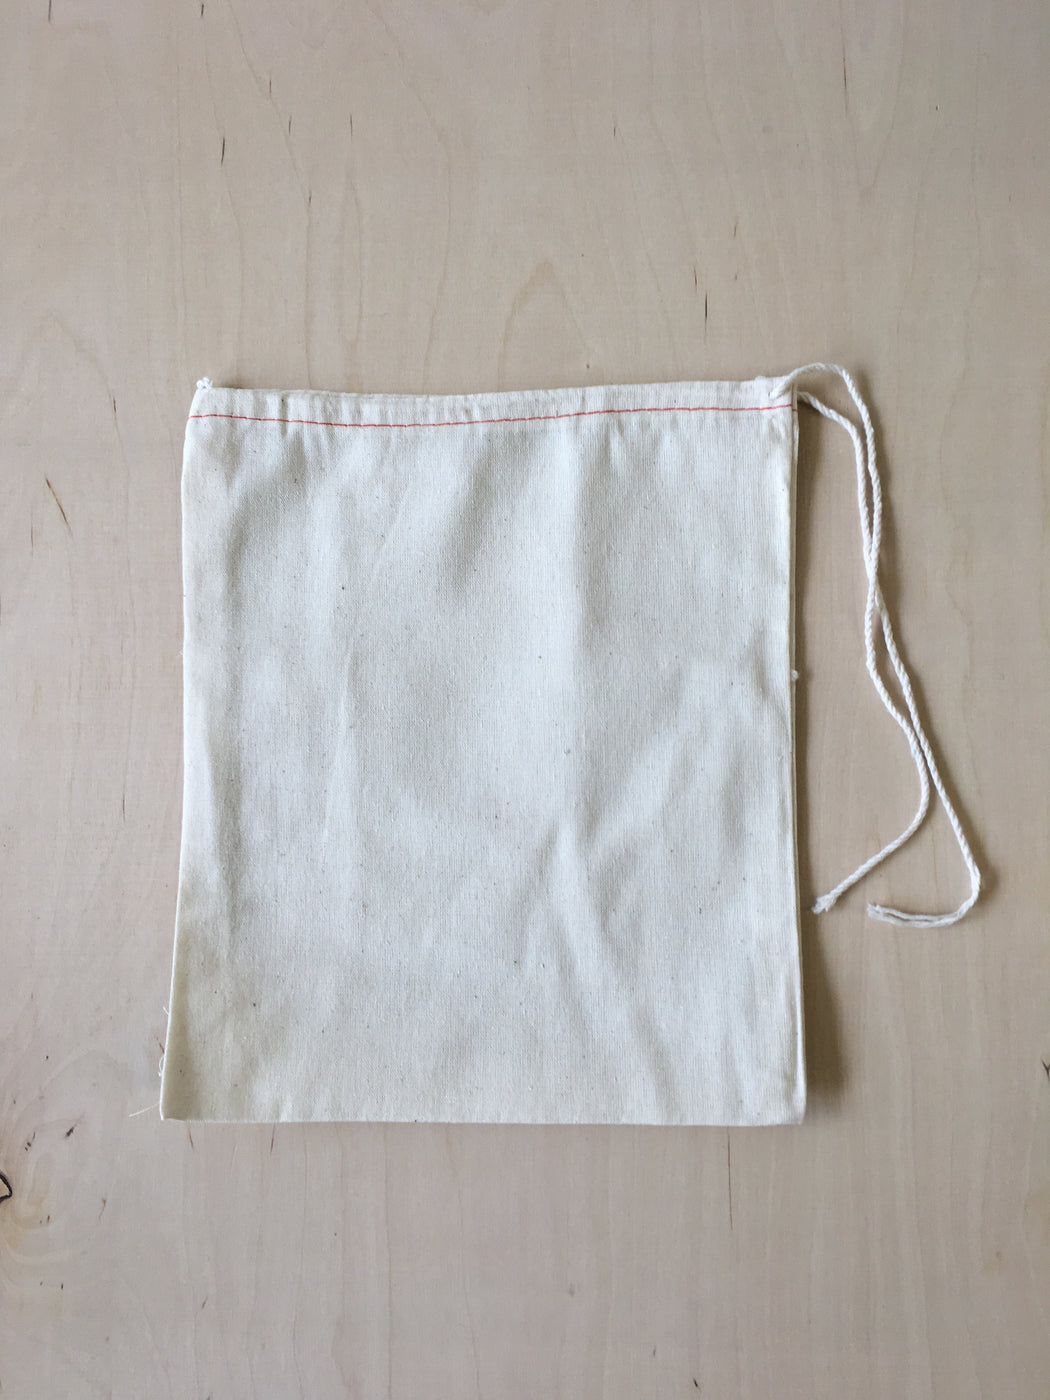 Lore General Supplies- Muslin Bulk Bags